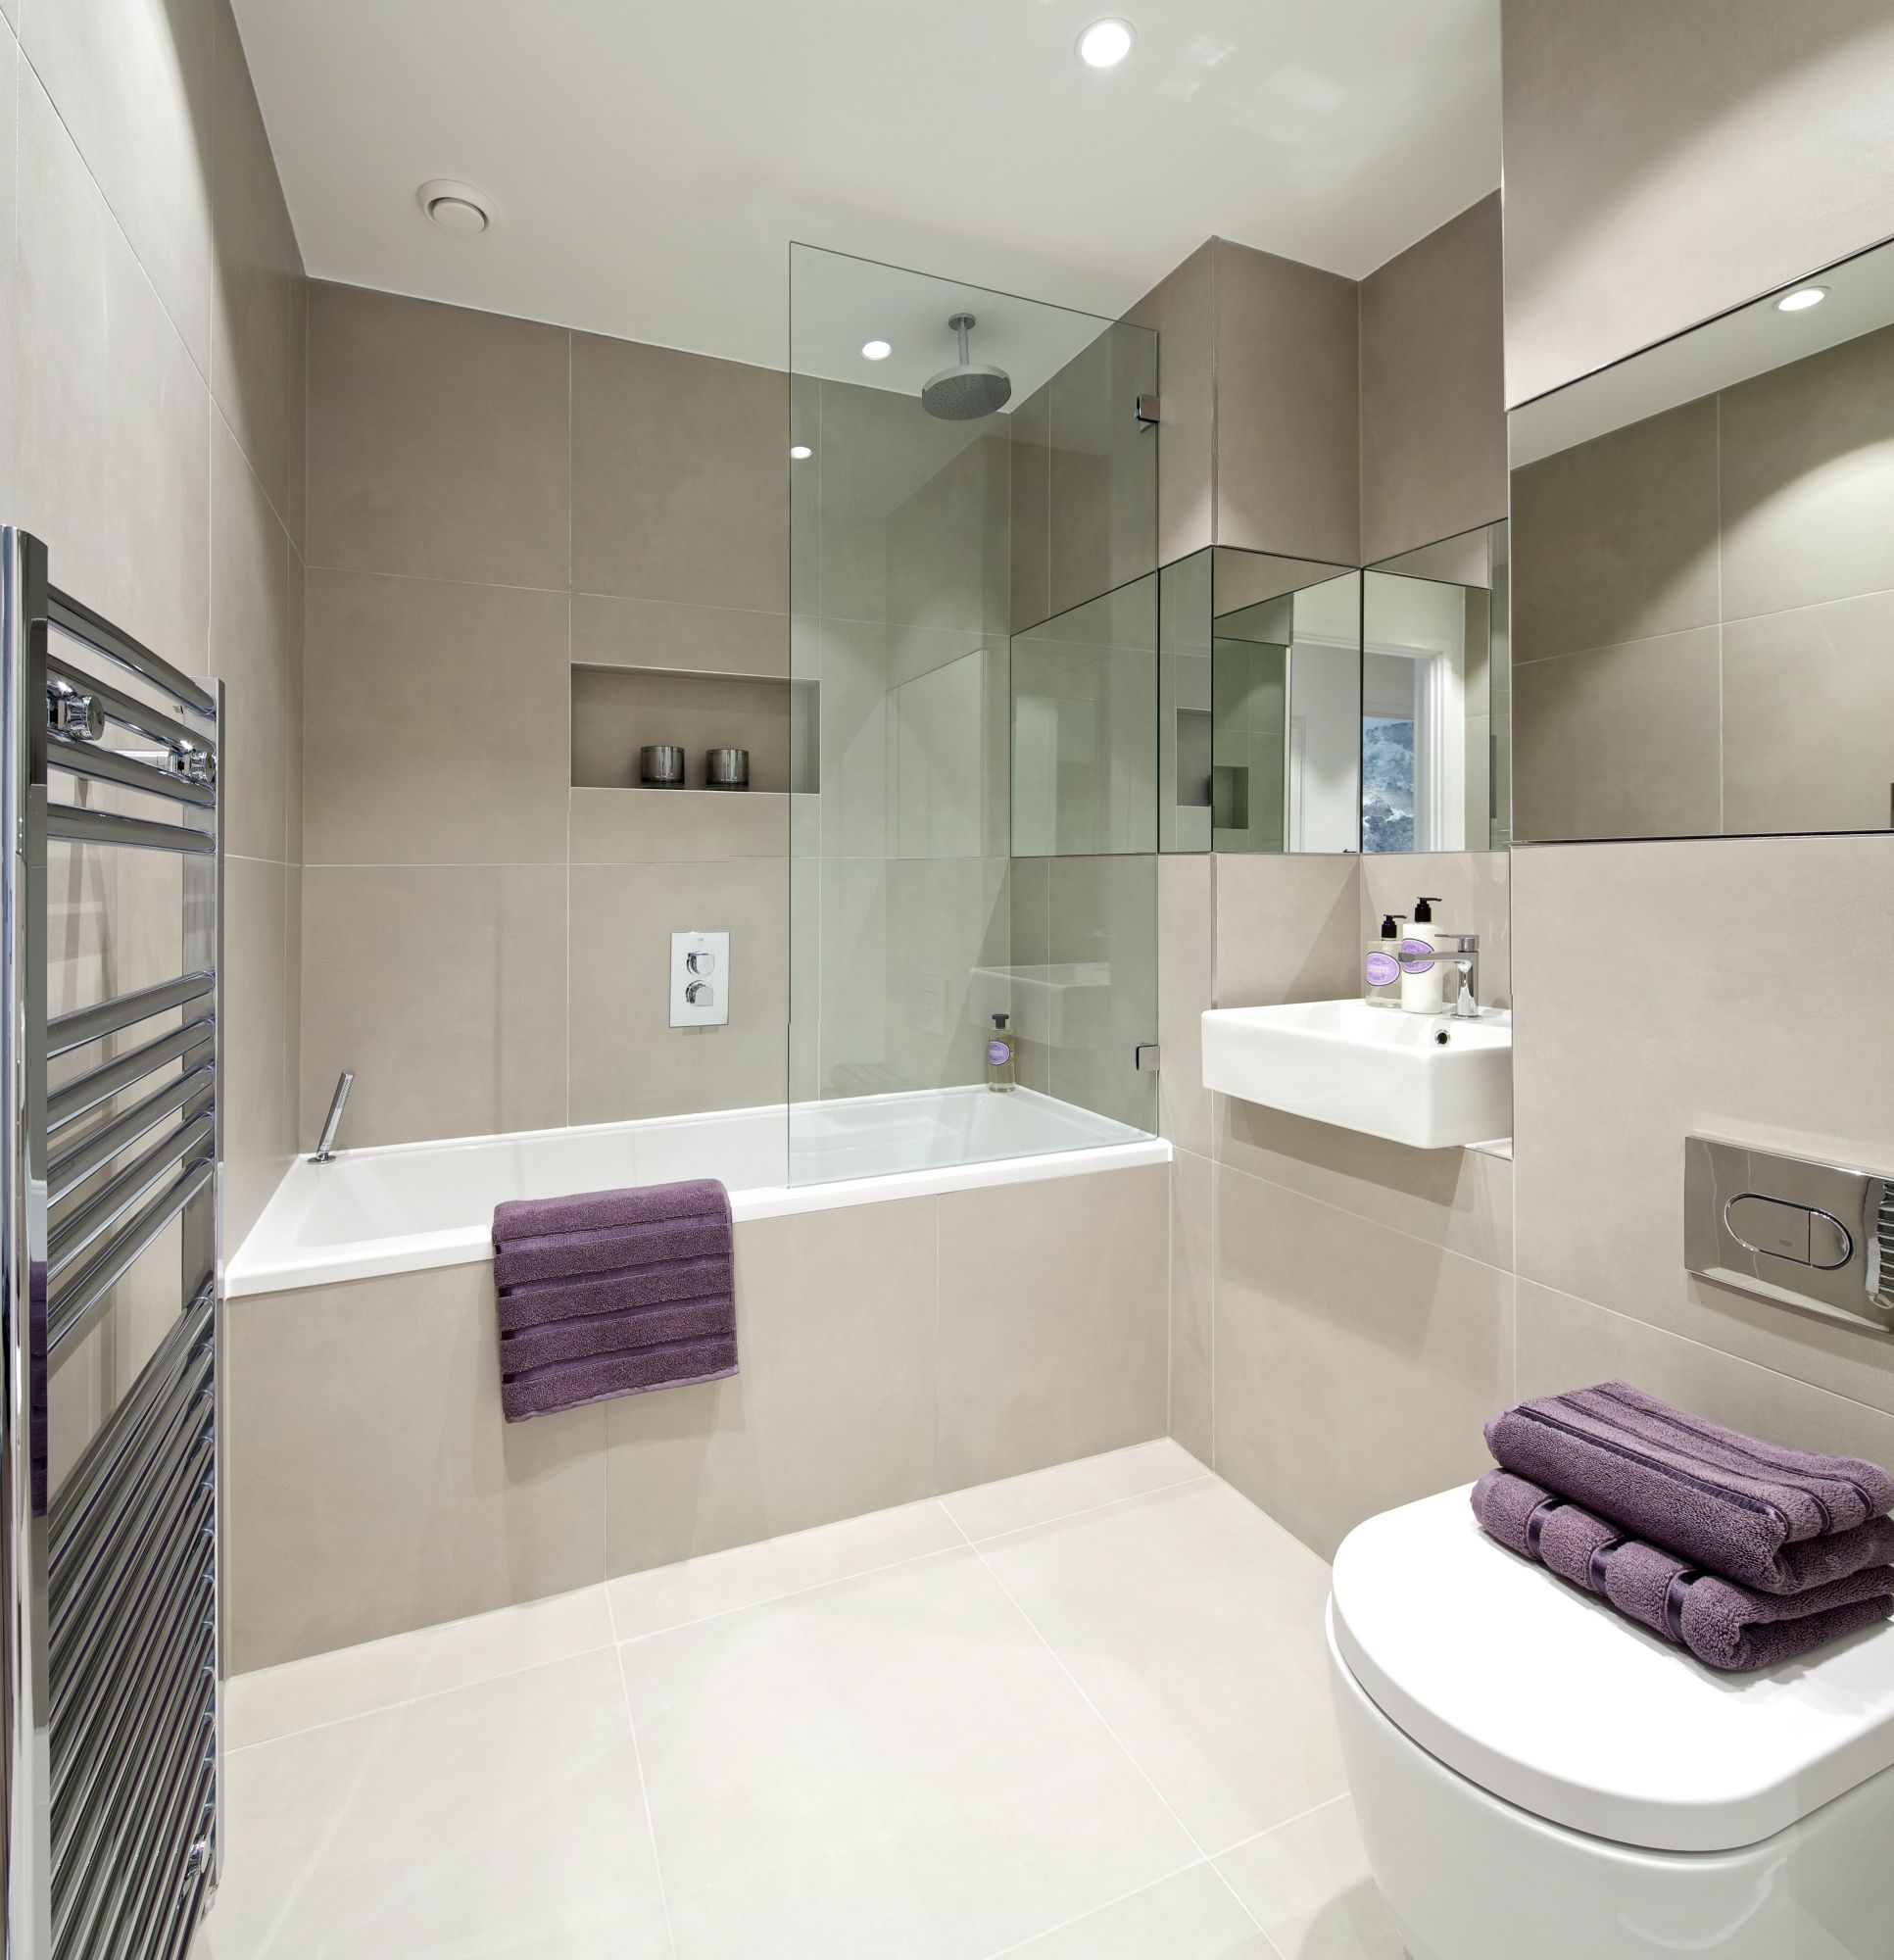 Inside homes bathrooms - Bathroom Best Colors For Apartment Bathroom Design Another Stunning Design Interior Bathroom Modern Apartment Bathtub Water Closet Puple Towel Also Glass